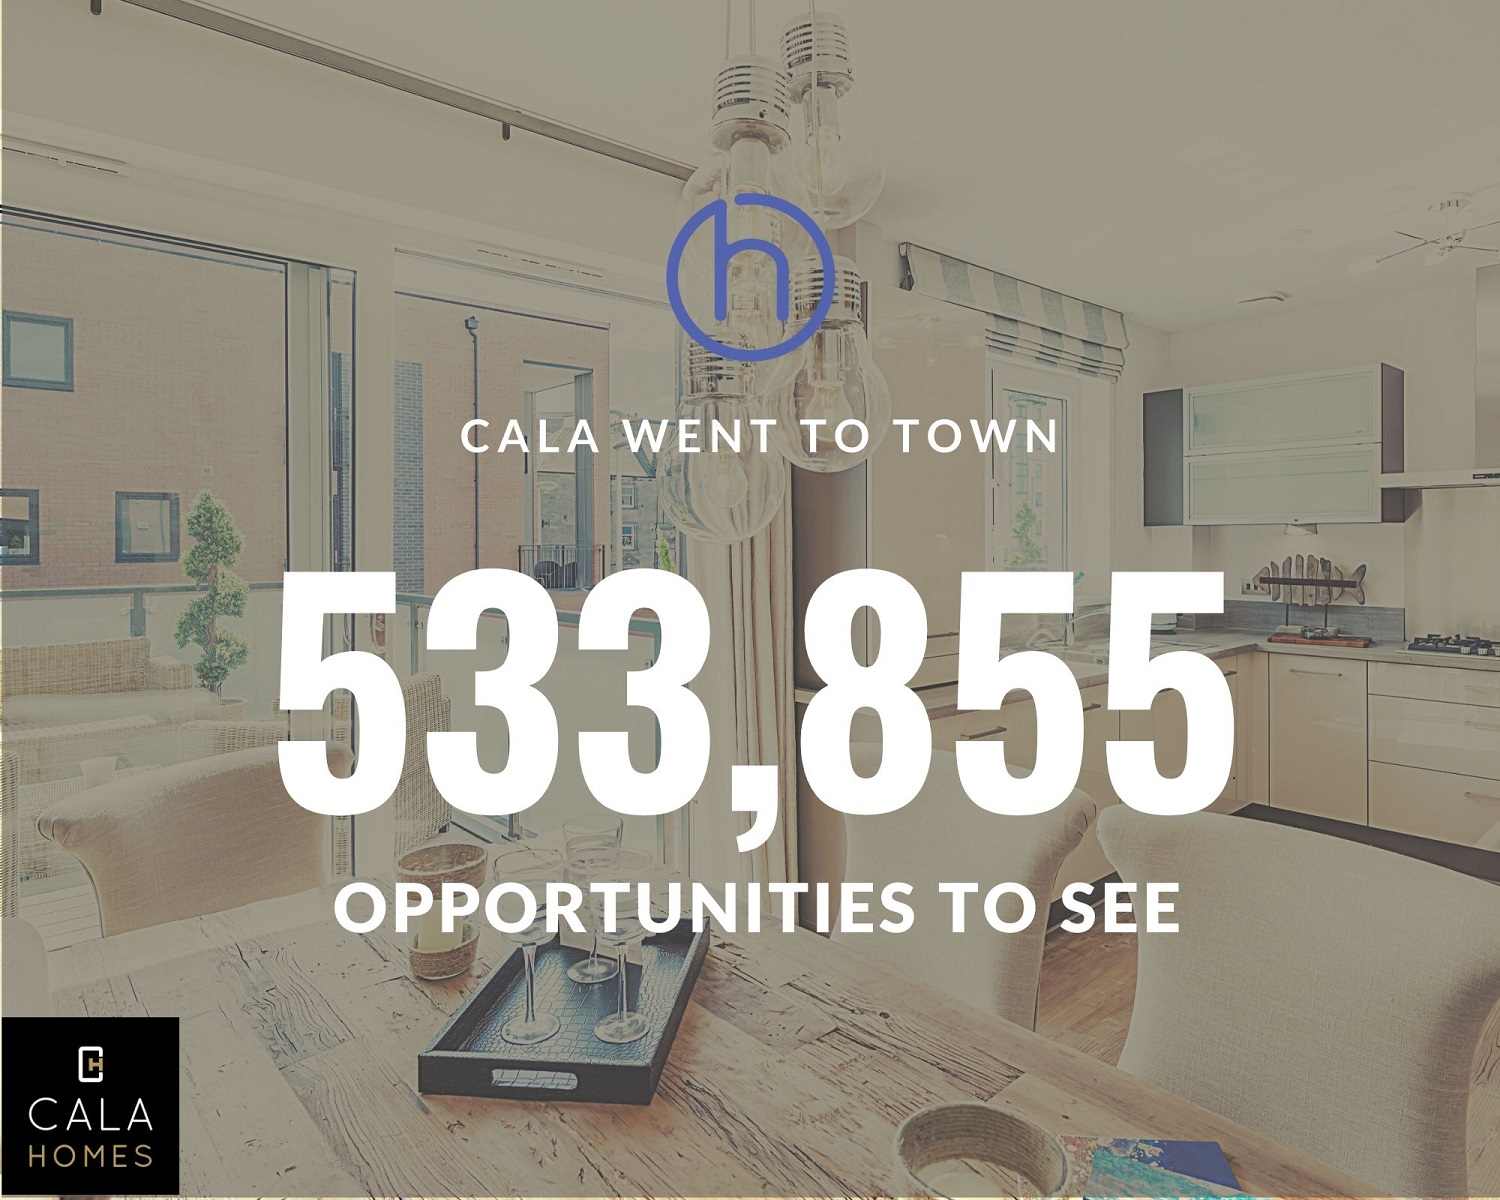 Property PR guarantees exposure for CALA's newest showhome launch